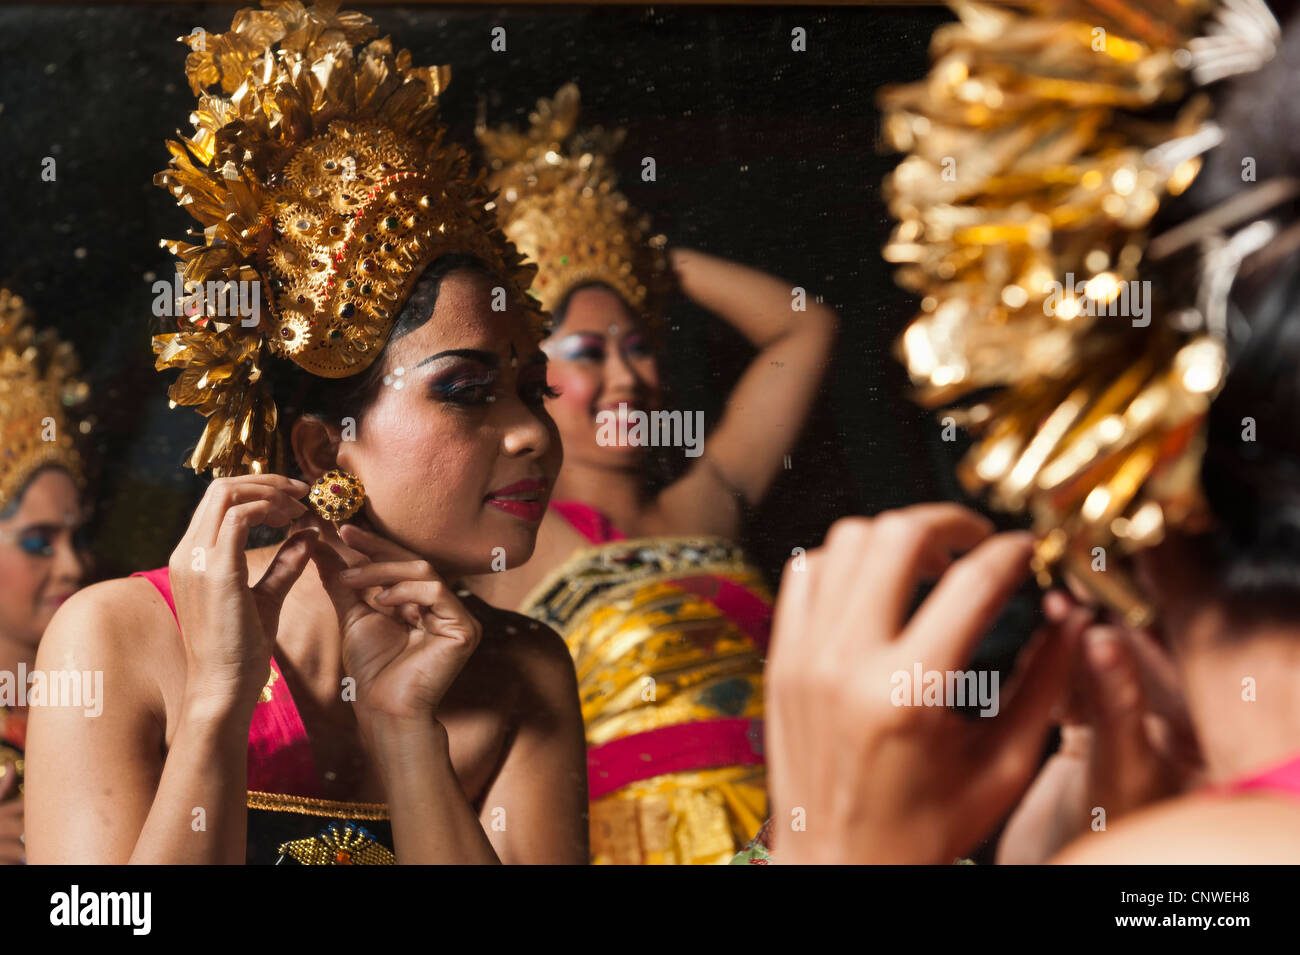 Balinese dancers getting ready for a show in Ubud, Bali, Indonesia - Stock Image